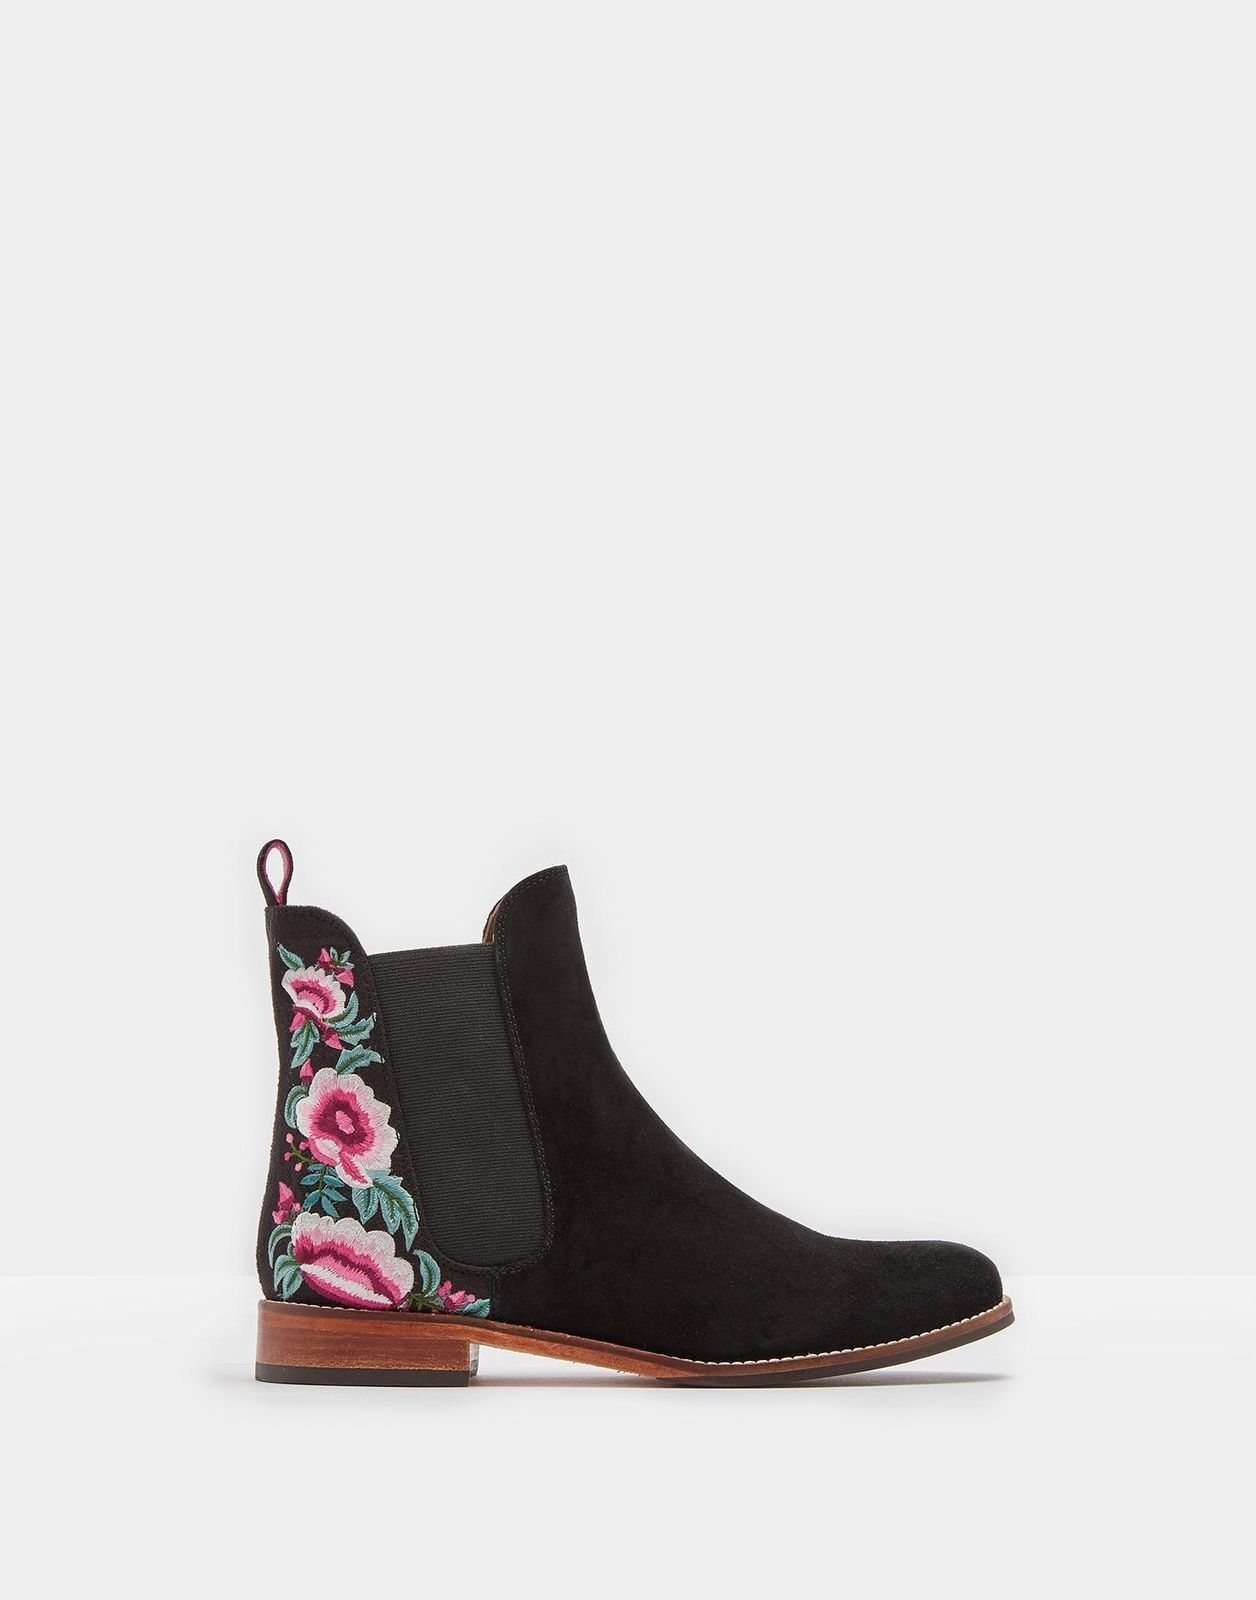 nyA TAGS BOX  JOULES  BLAND WESTBOURNE FLORAL FLAT CHELESEA BOOTS UK 6